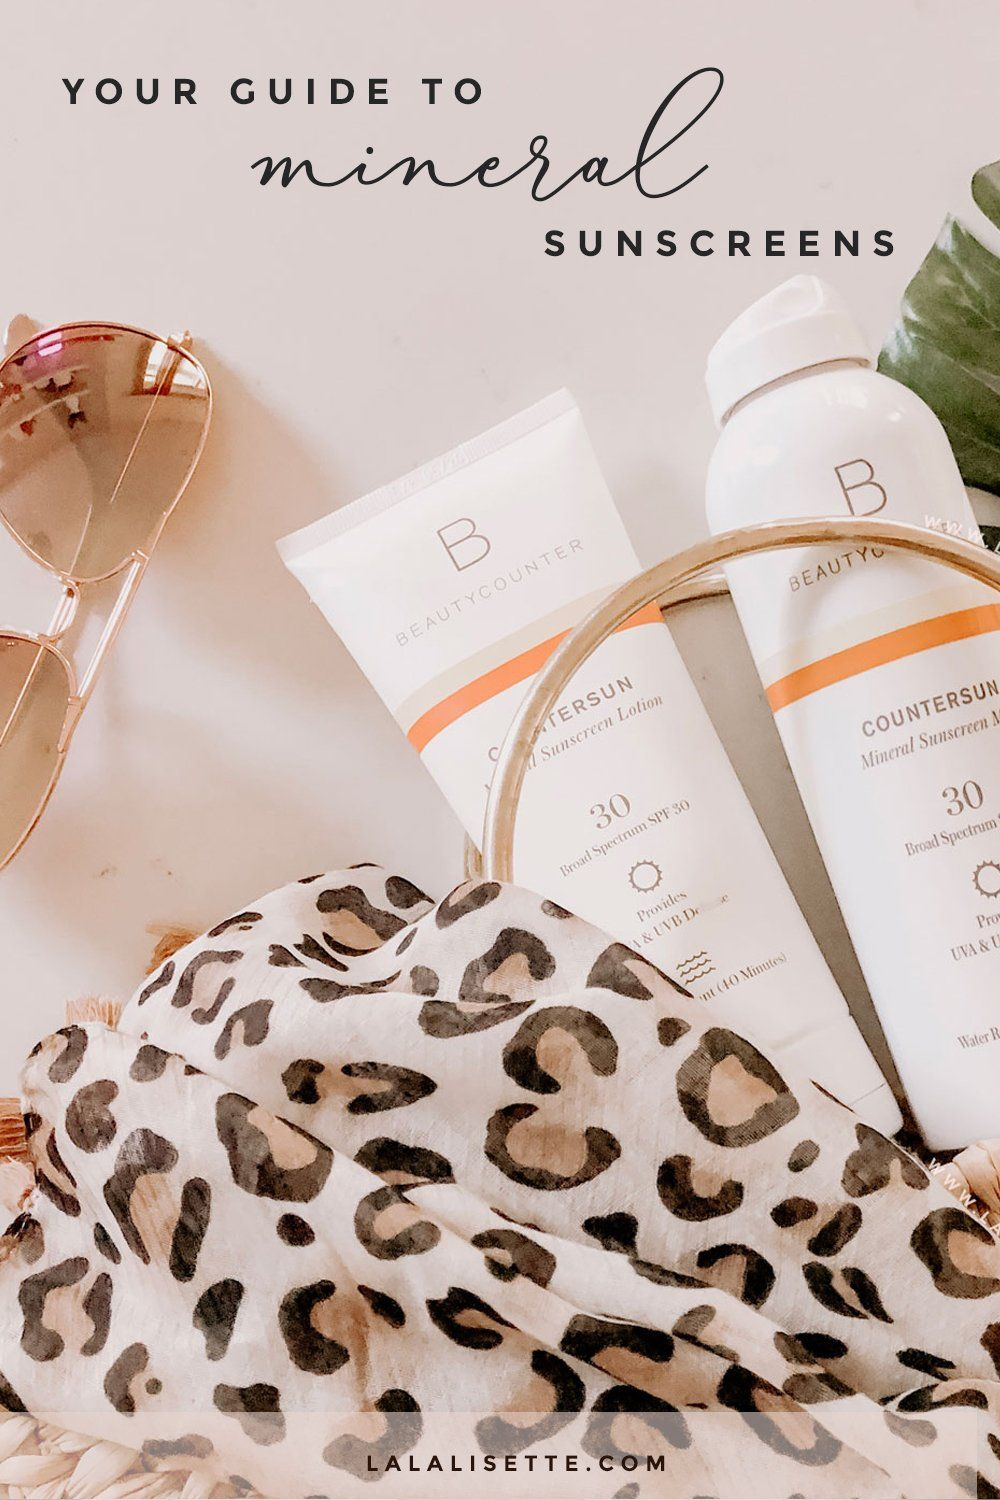 The importance of mineral sunscreen, especially those made from non-nano zinc oxide, and why it's a safer sunscreen for your health and that of the environment. #sunscreen #mineralsunscreen #nontoxicsunscreen #saferbeauty #betterbeauty